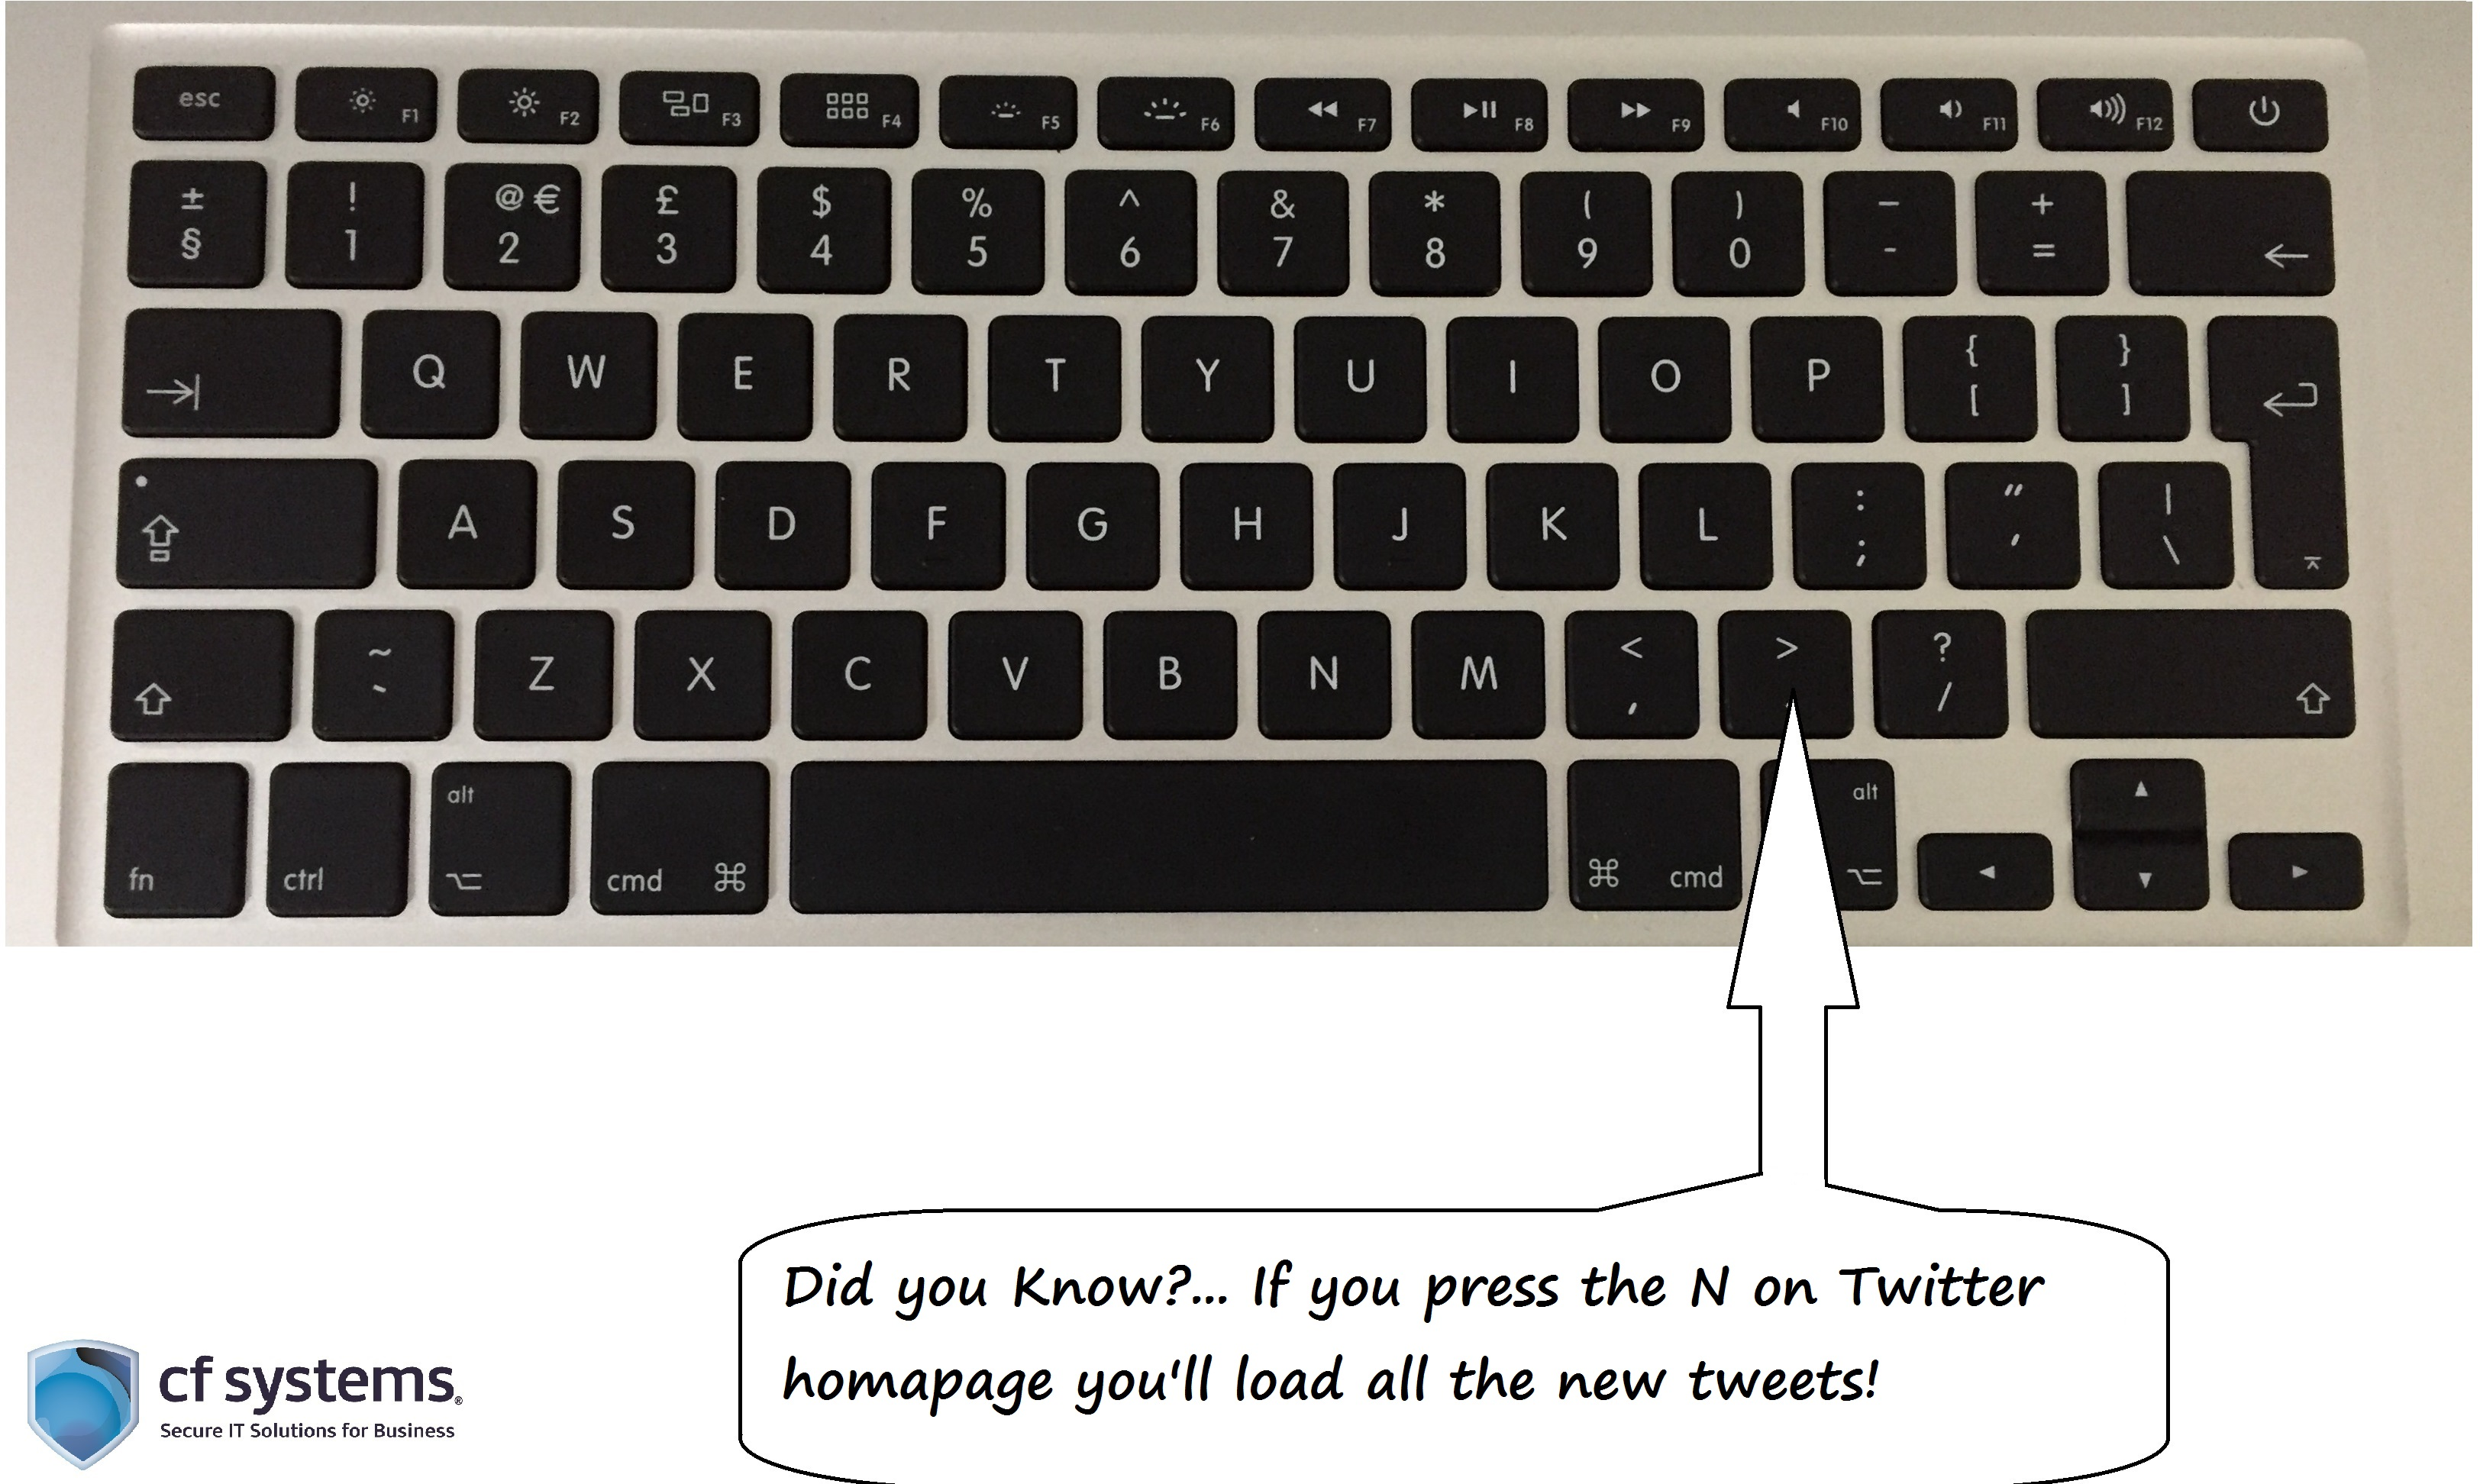 Twitter shortcuts! Did you know you can load new tweets without using your mouse?